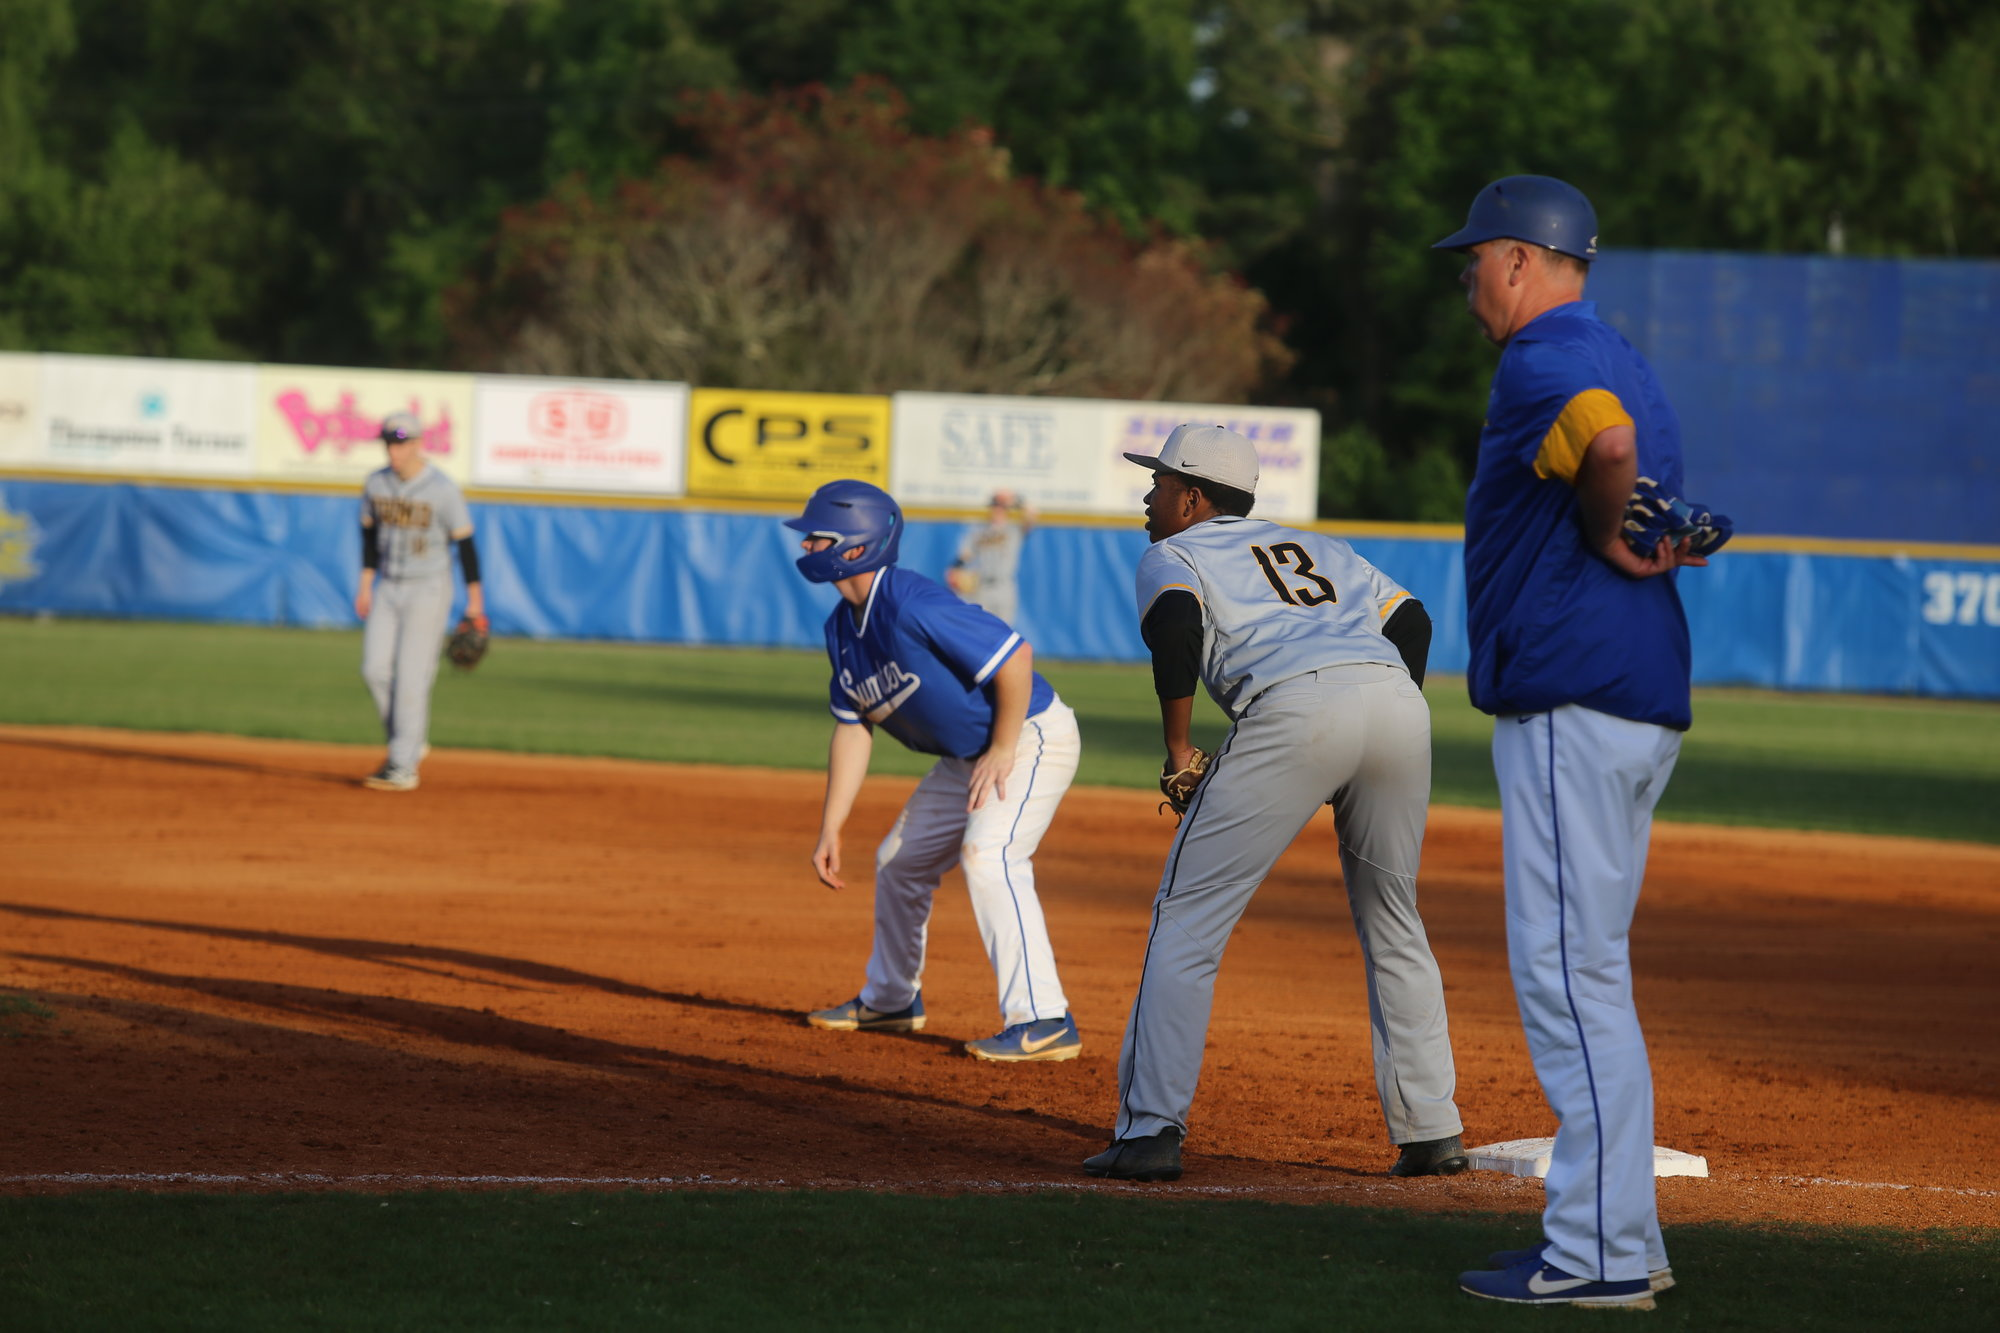 Sumter's Jacob Holladay takes a lead off first base.